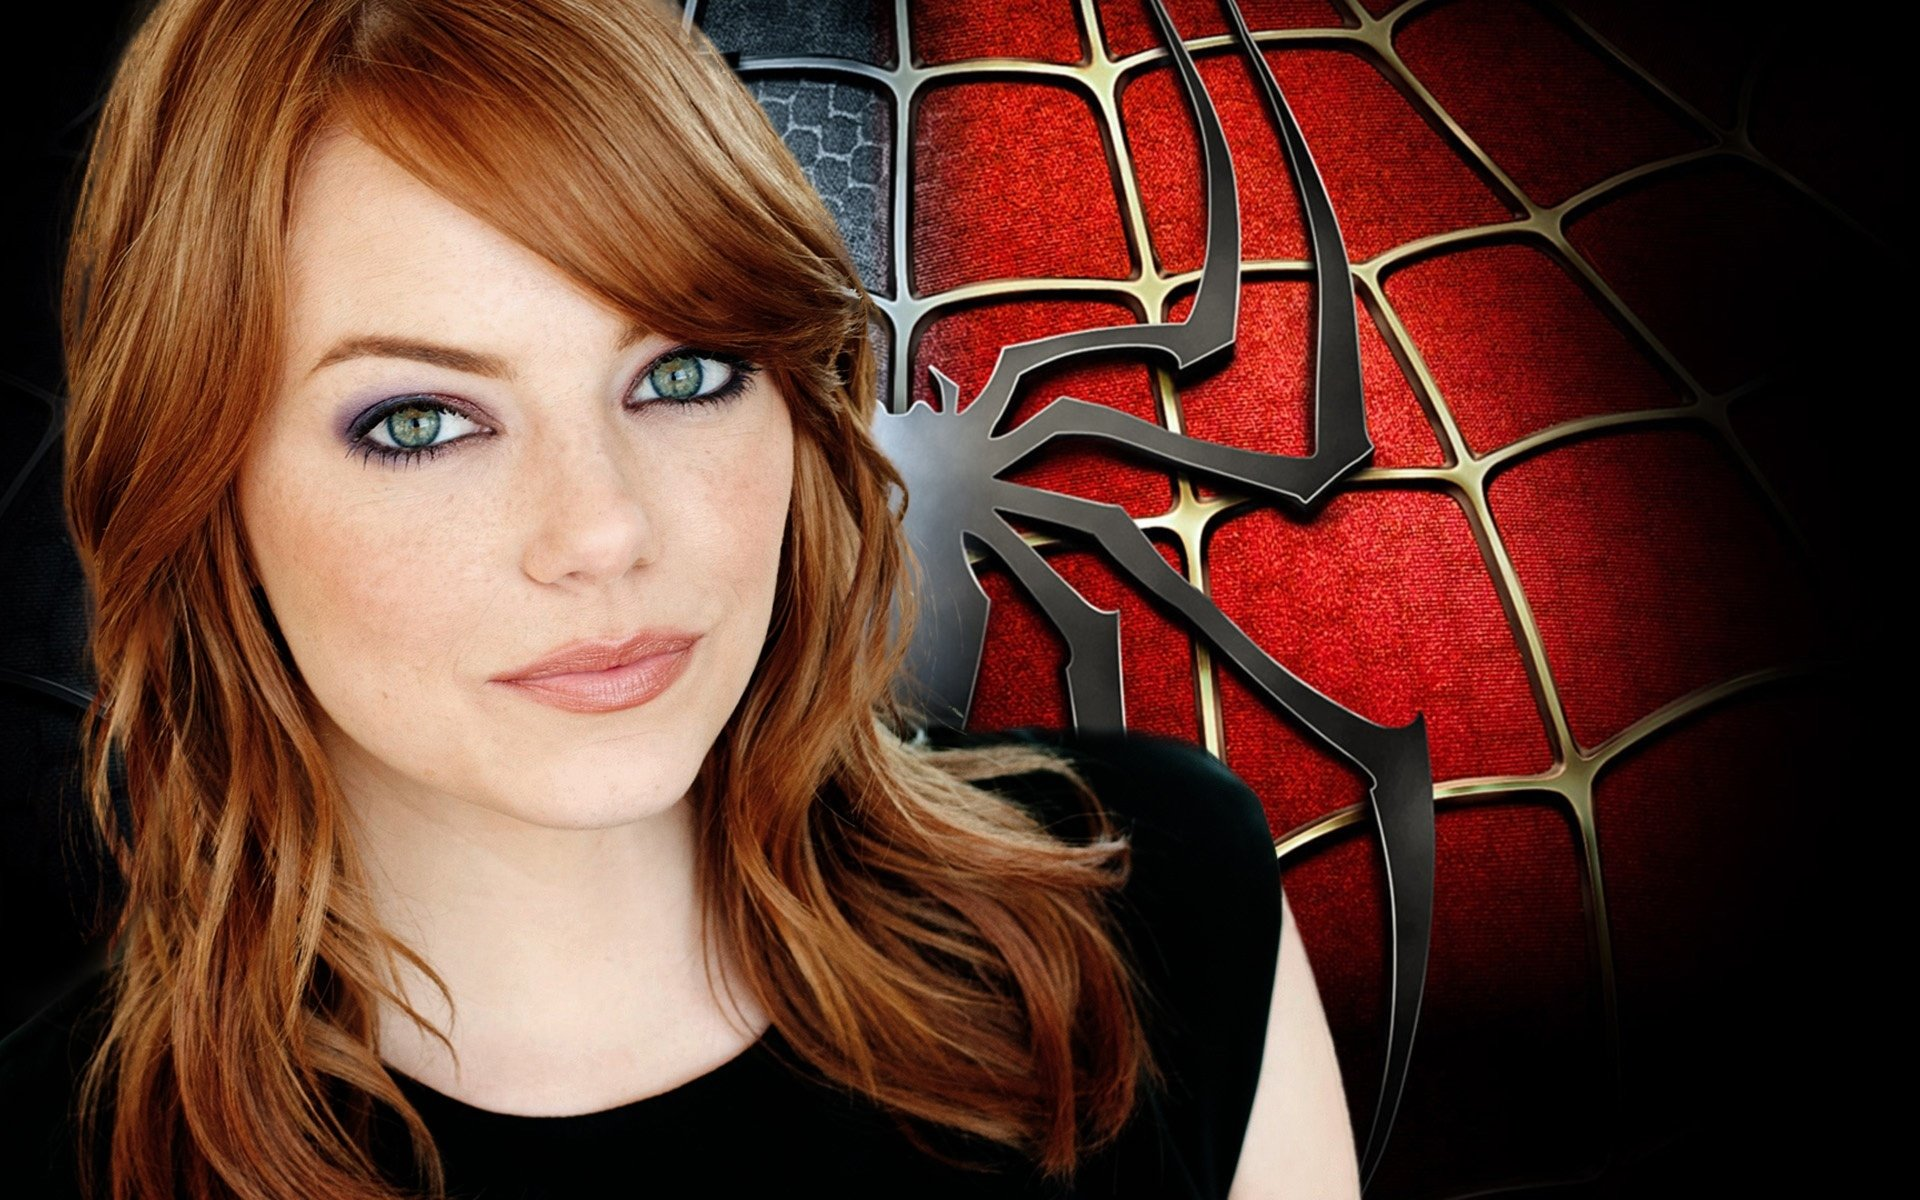 323 Emma Stone Hd Wallpapers Backgrounds Wallpaper Abyss